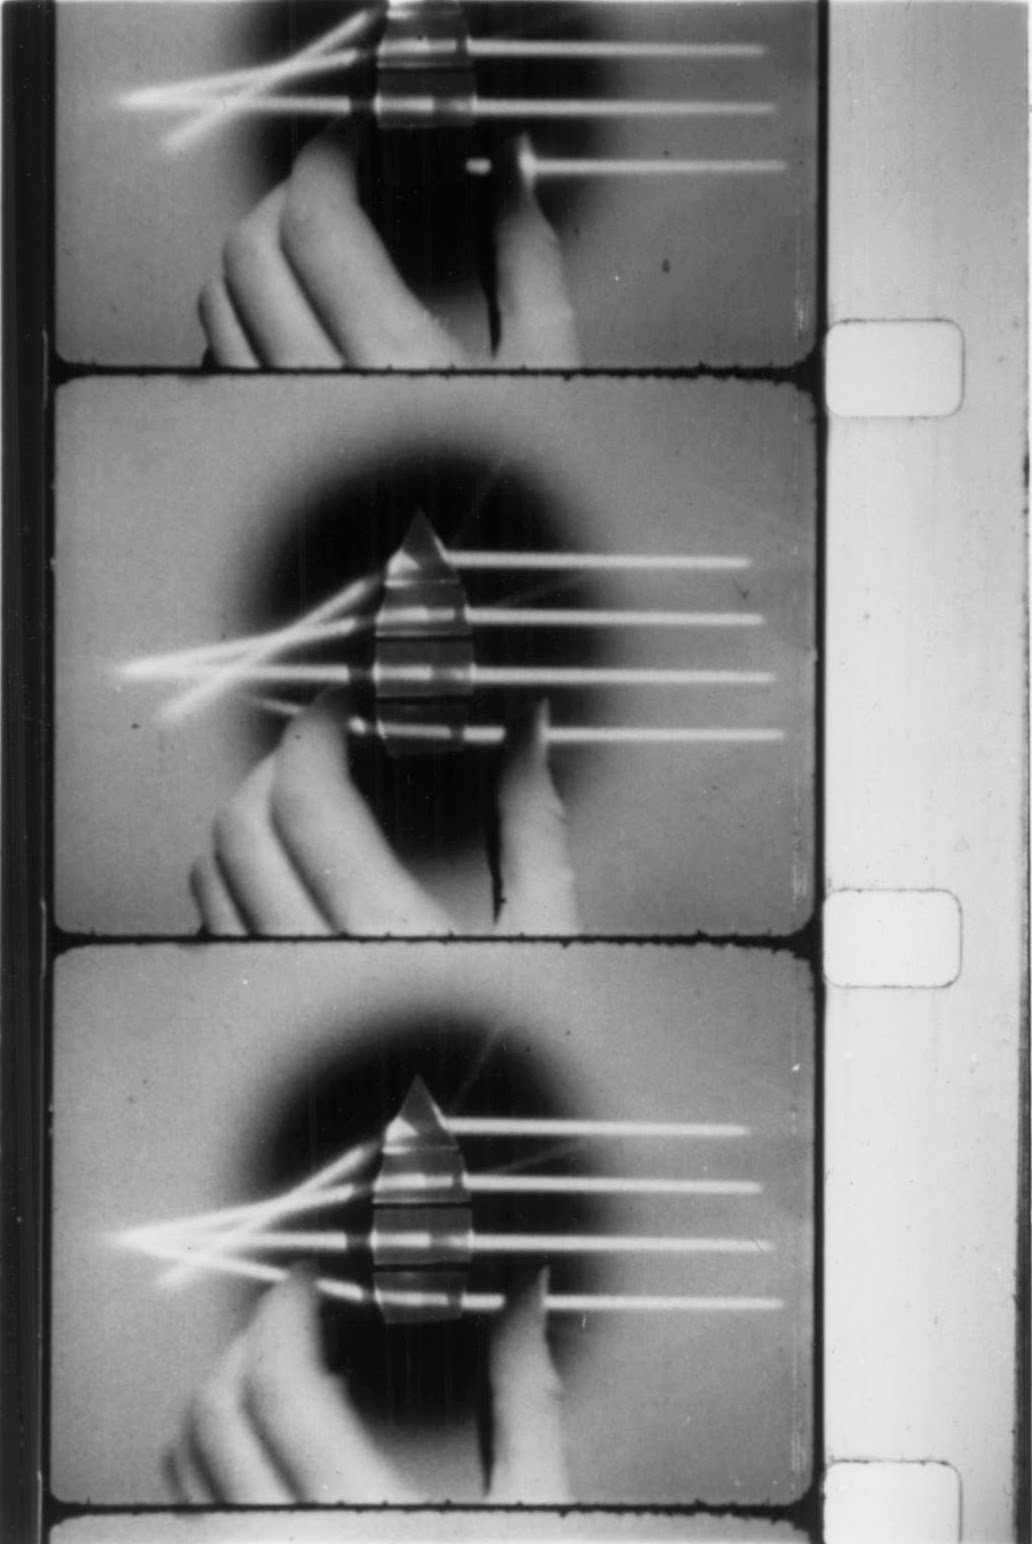 If You Stand With Your Back to the Slowing of the Speed of Light in Water   Julie Murray   1999   18 minutes   UK  16mm   color   sound  The film aims to illuminate a vital sense innate to perception where inversion is counterbalance and focal myopia the articulation of space -JM